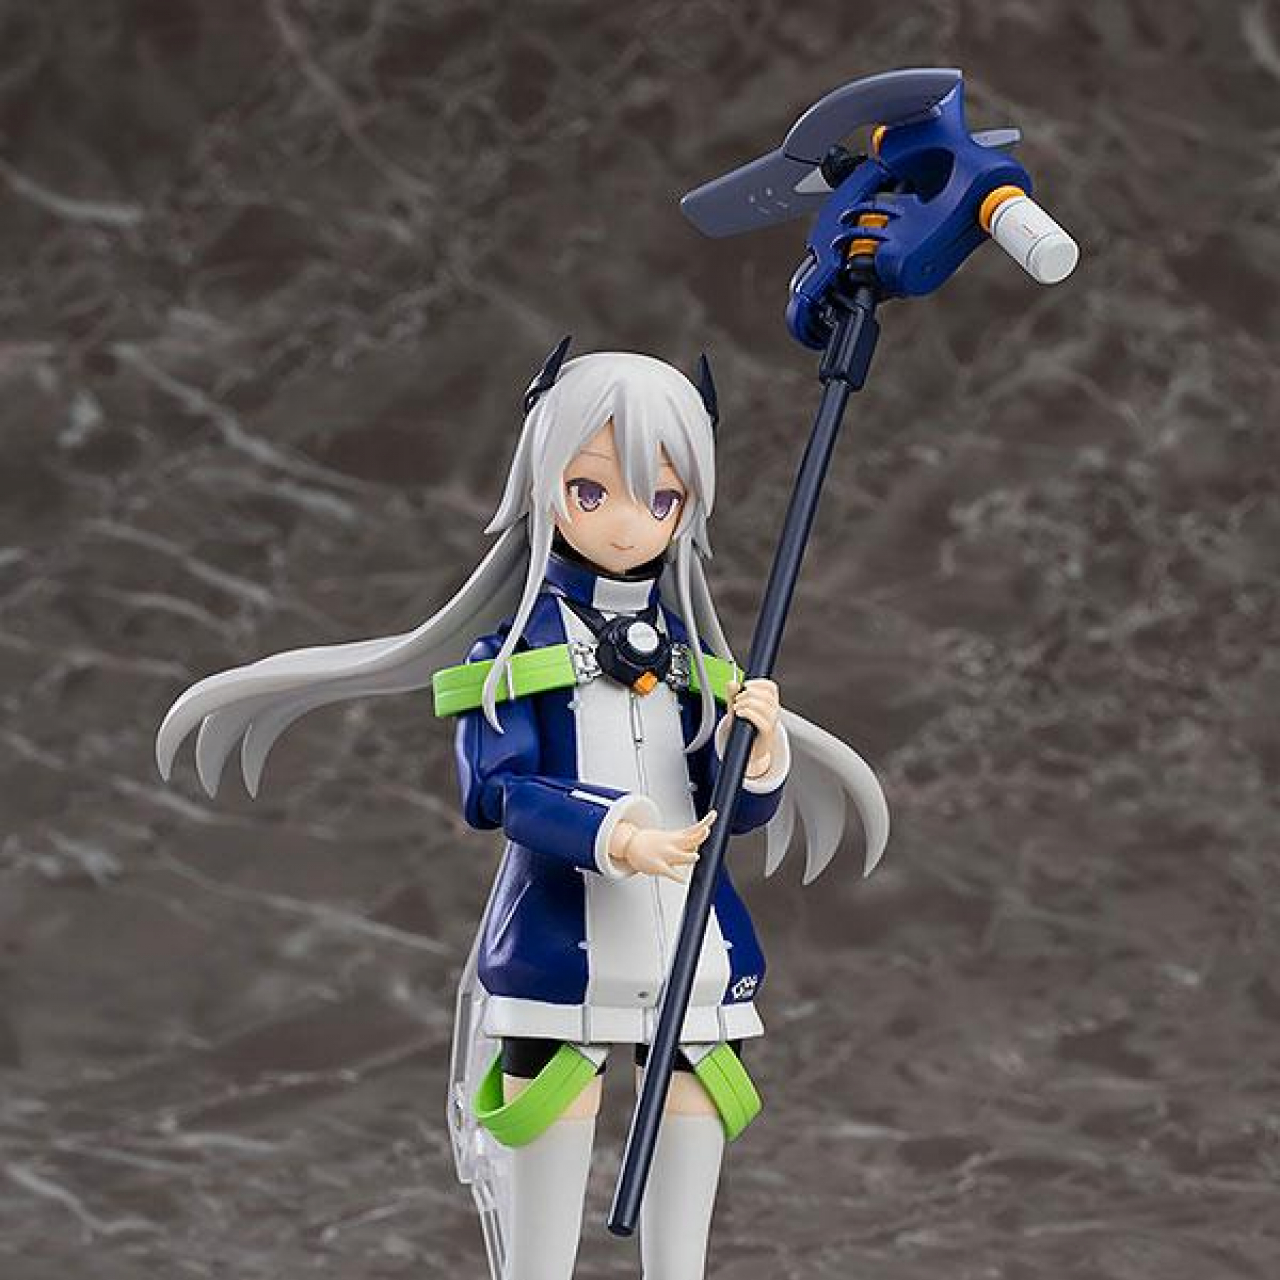 Original Character Navy Field 152 Act Mode Plastic Model Kit Mio & Type15 Ver. 2 20 cm